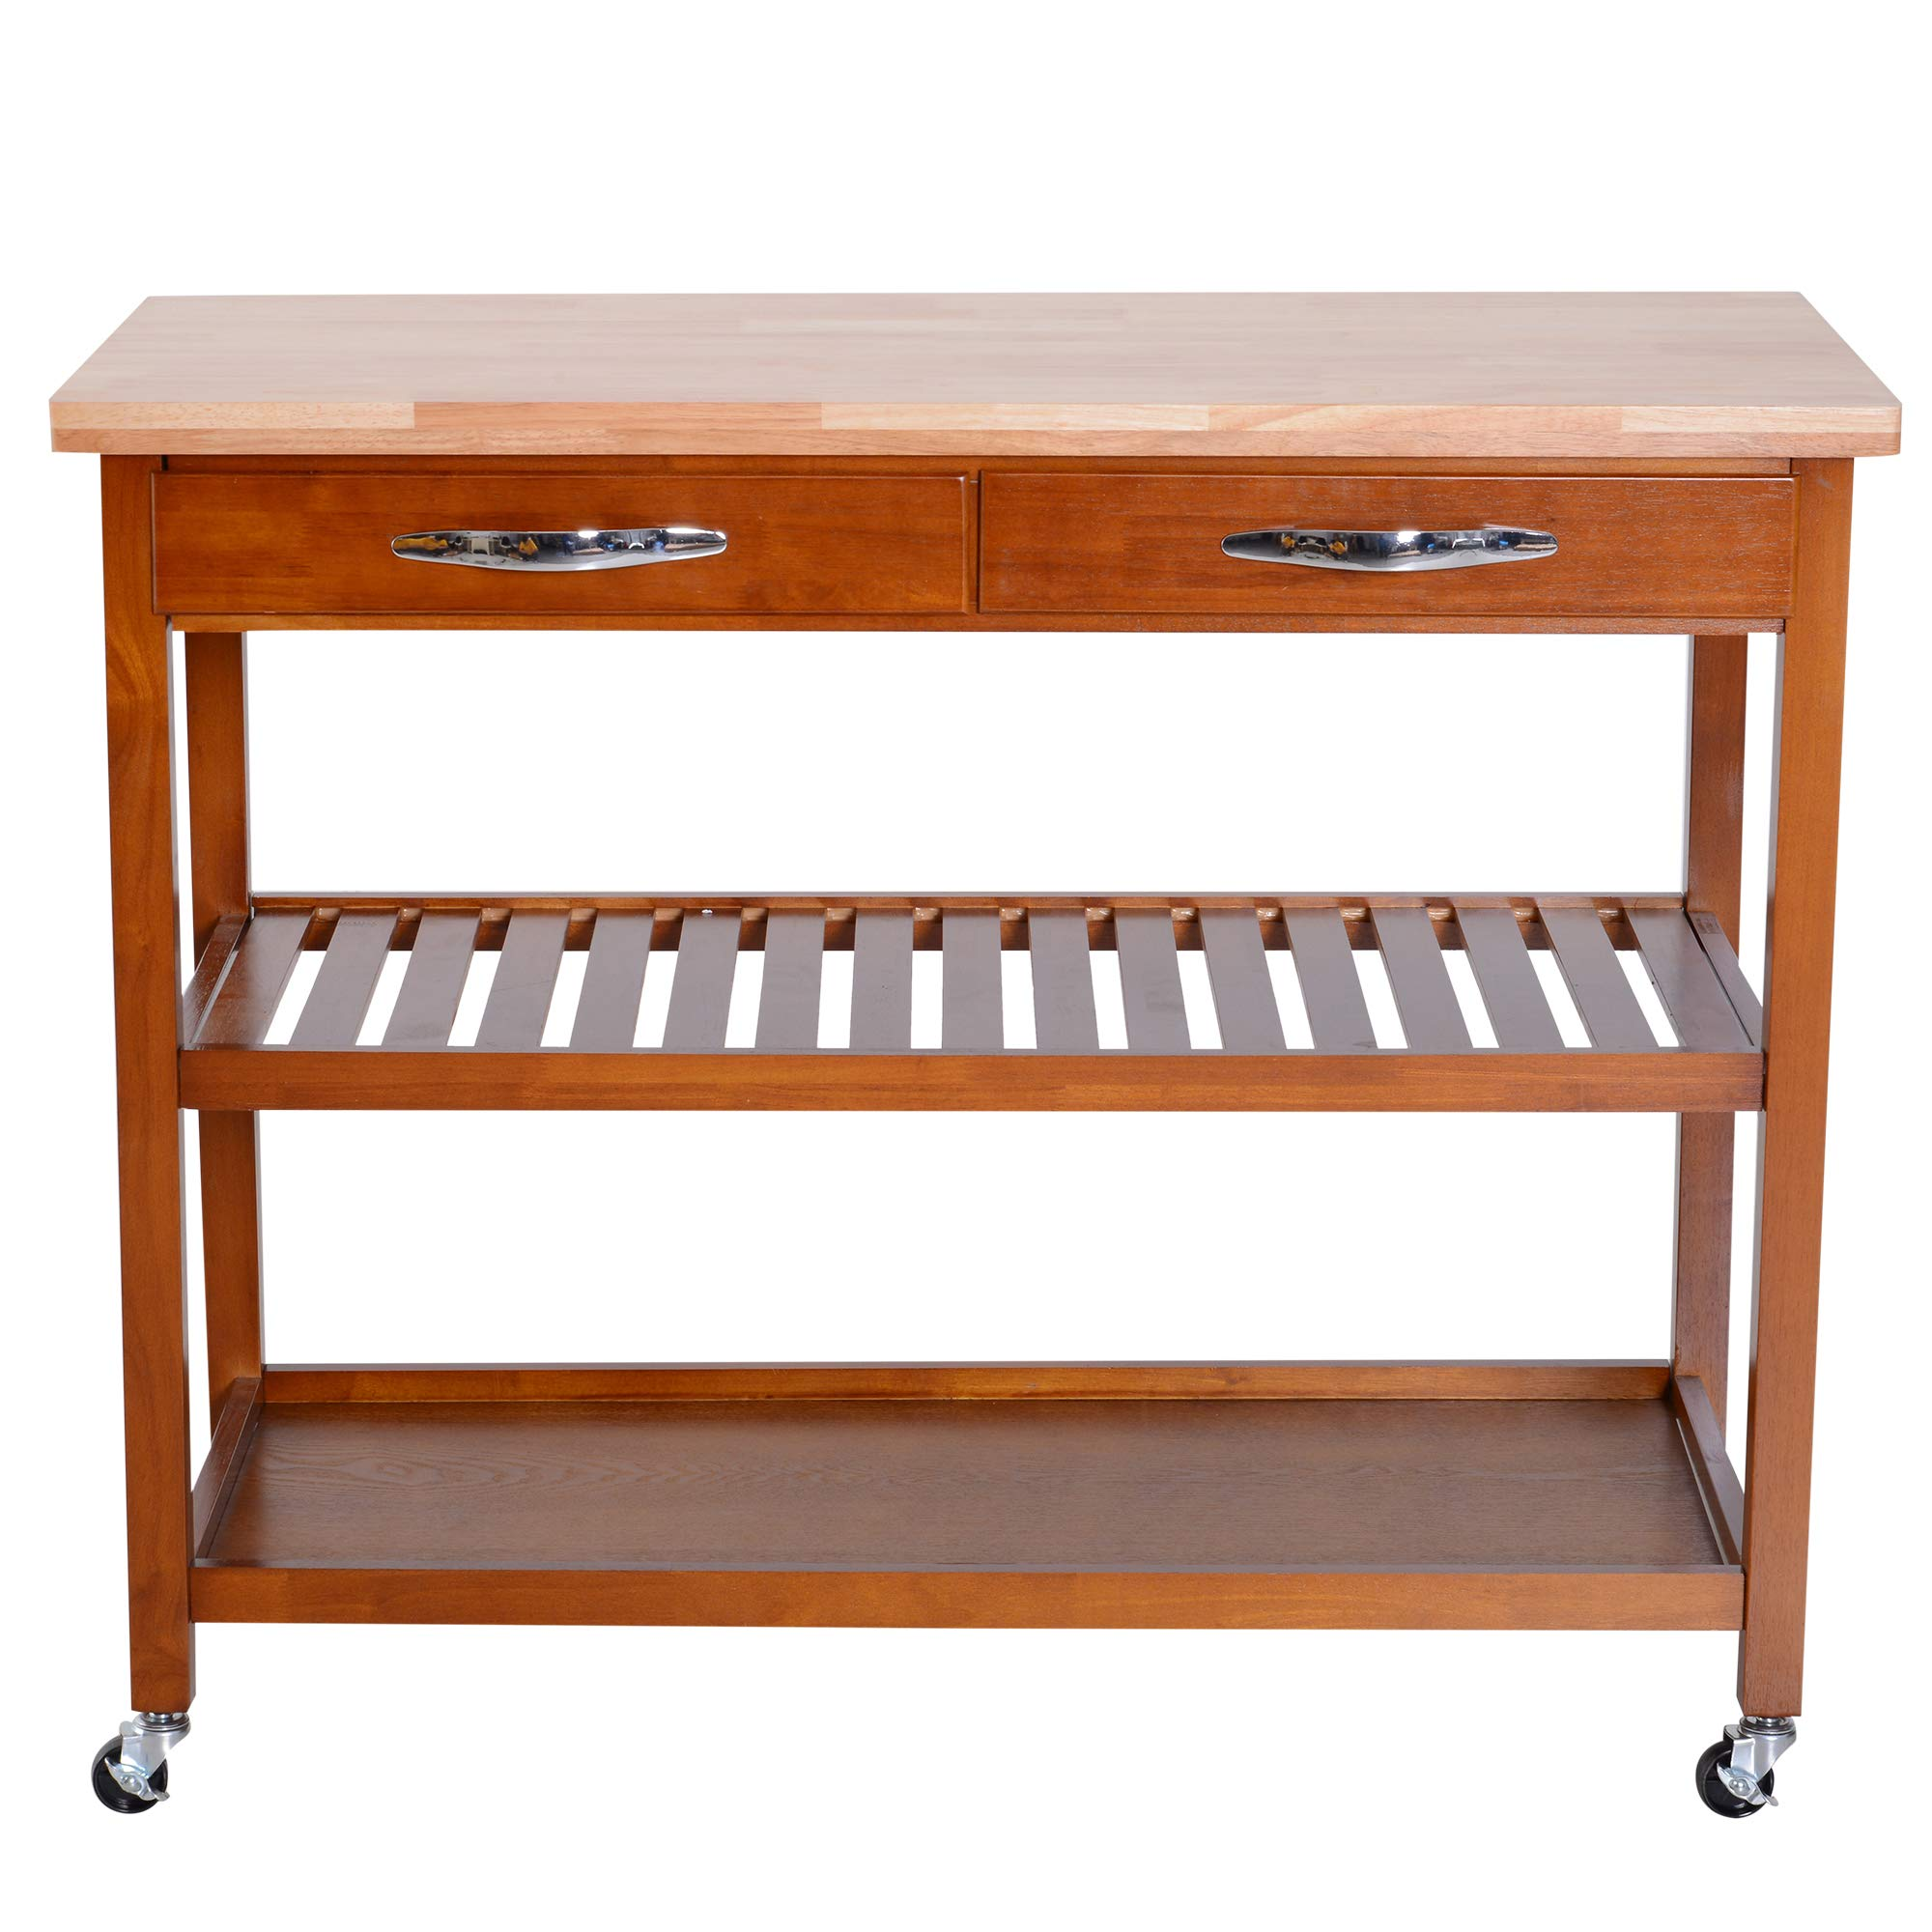 HOMCOM 44'' 3-Tier Rubberwood Kitchen Island Cart on Wheels - Brown by HOMCOM (Image #3)